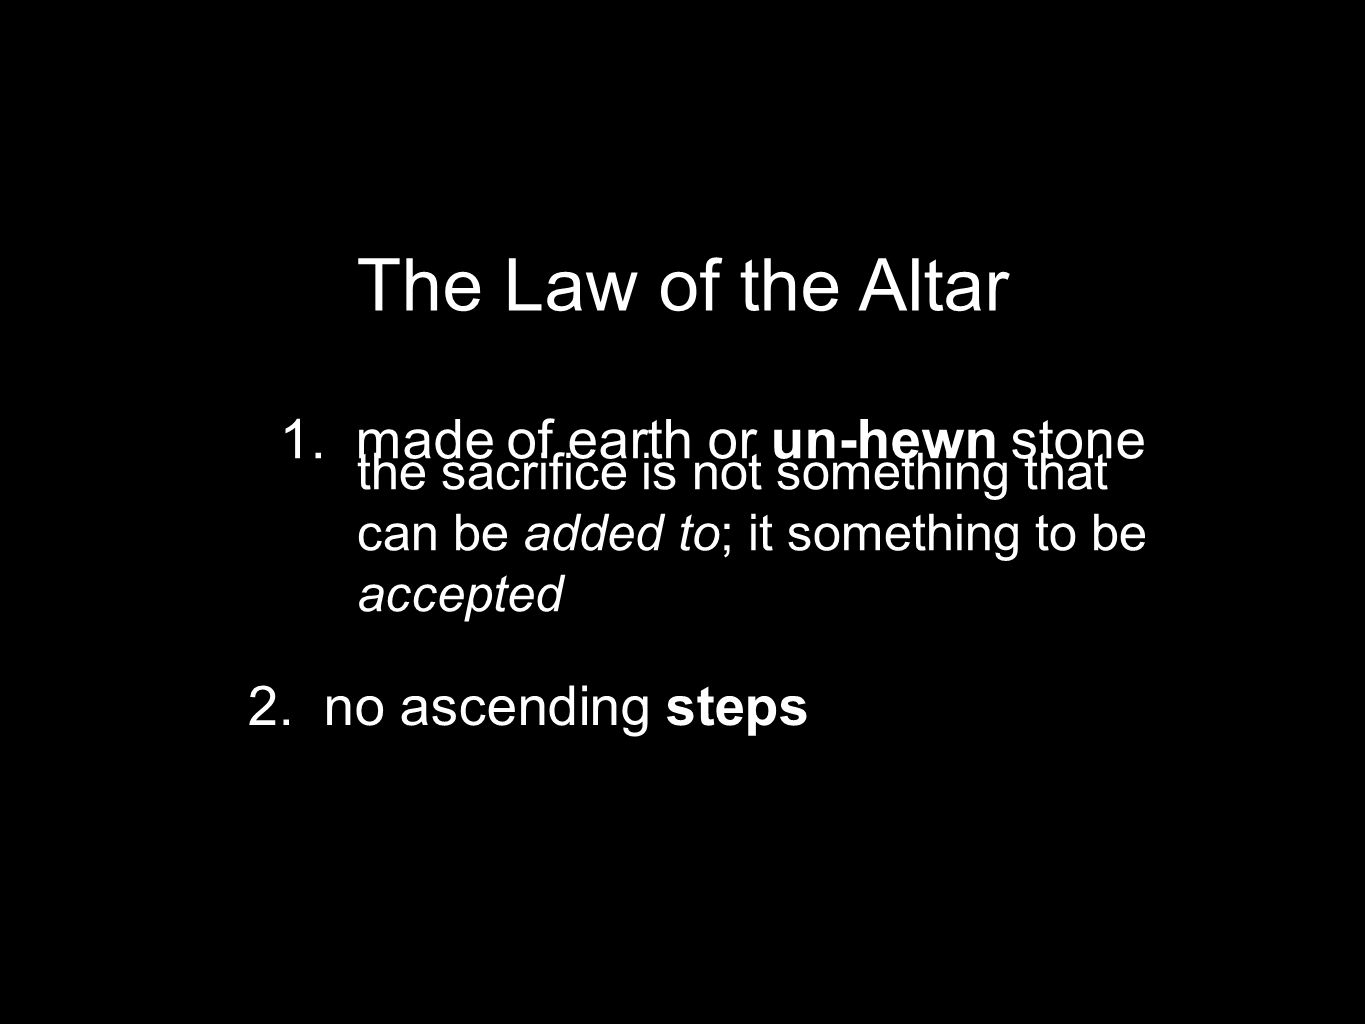 1. made of earth or un-hewn stone The Law of the Altar 2.